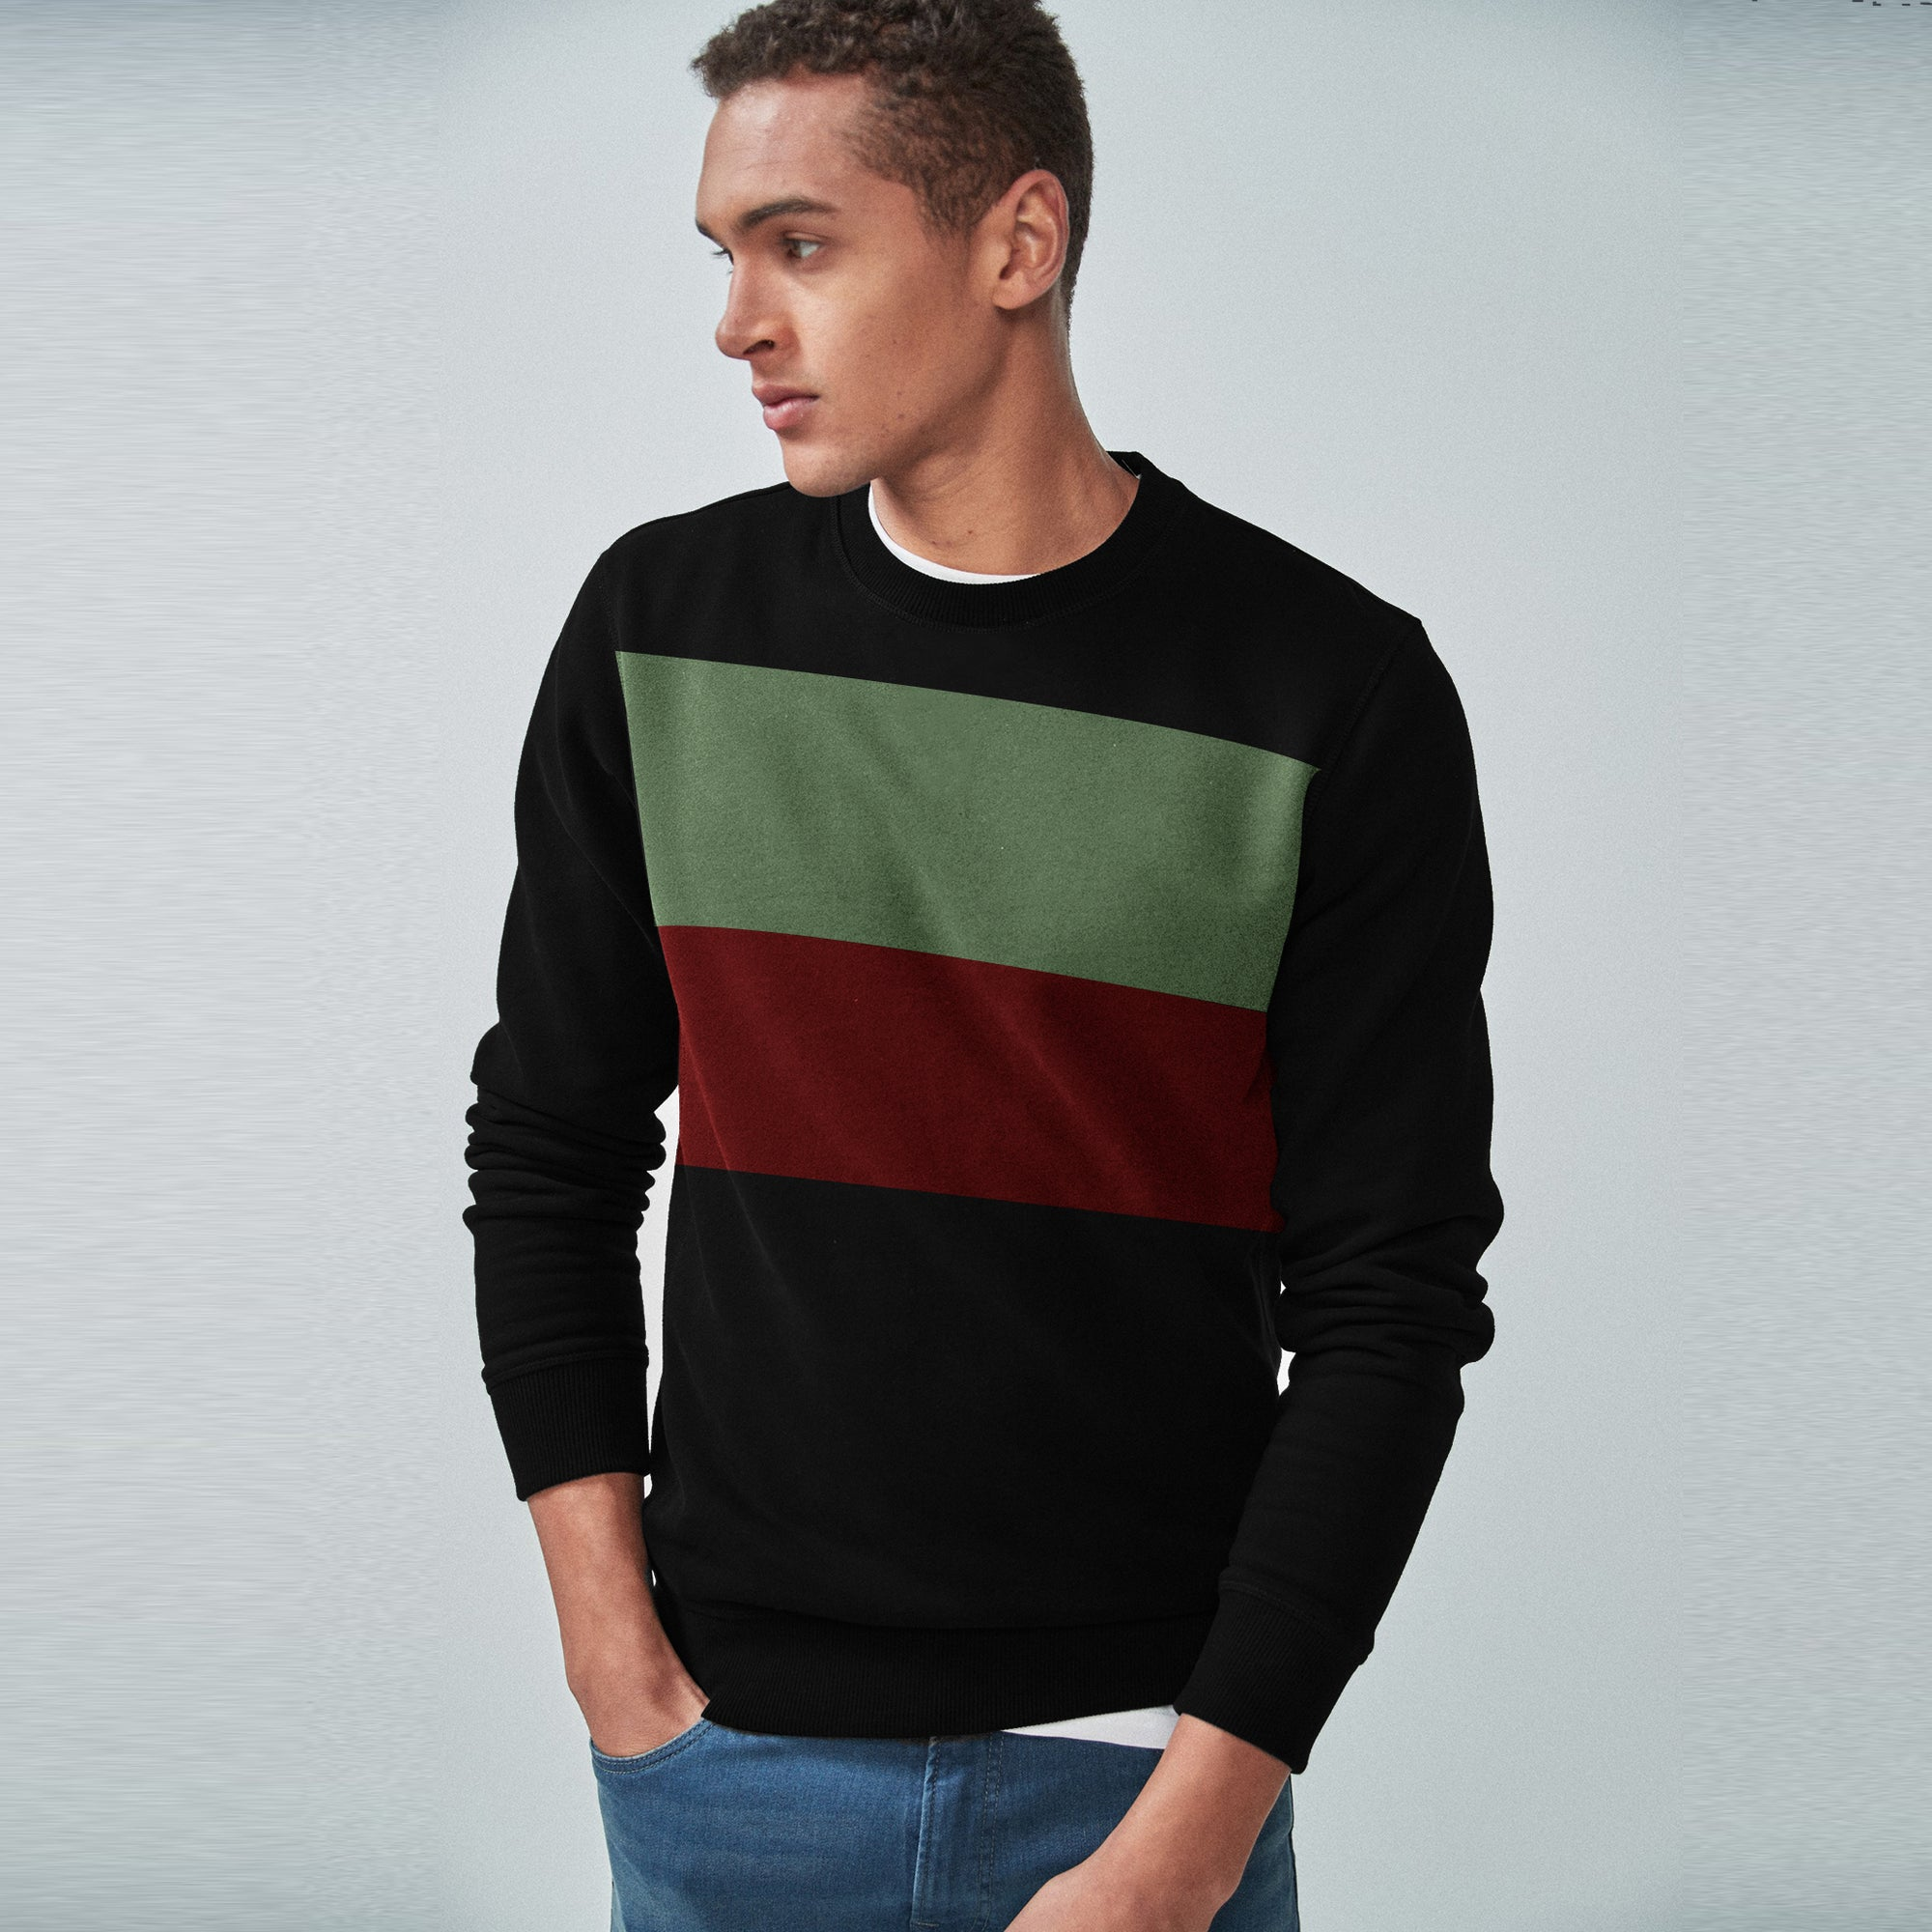 Next Terry Fleece Crew Neck Sweatshirt For Men-Black with Panels-SP1581